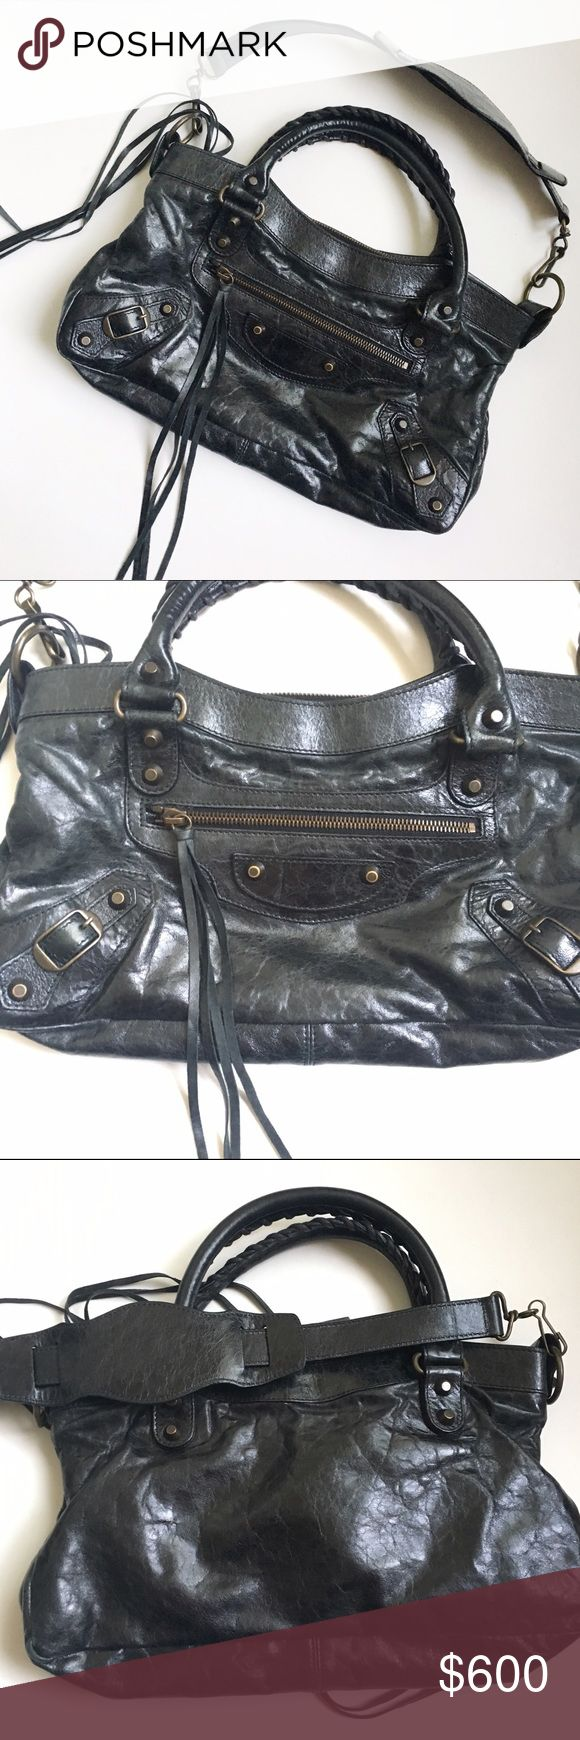 """Balenciaga """"First"""" Leather Shoulder Bag AUTHENTIC. Gently used. Leather is buttery soft with no signs of wear. Clean interior. No stains. Tassles, zipped pockets on outside/inside, & removable shoulder strap (not a crossbody) Color is like a crackled black. Serial numbers indicate it is from F/W 2006, style 103208. Similar to City bag, but I believe its smaller.  13.5"""" x 7.5"""" x 2.6""""  So sad to part with it but it needs a new home! No mirror. Open to reasonable offers. Balenciaga Bags…"""